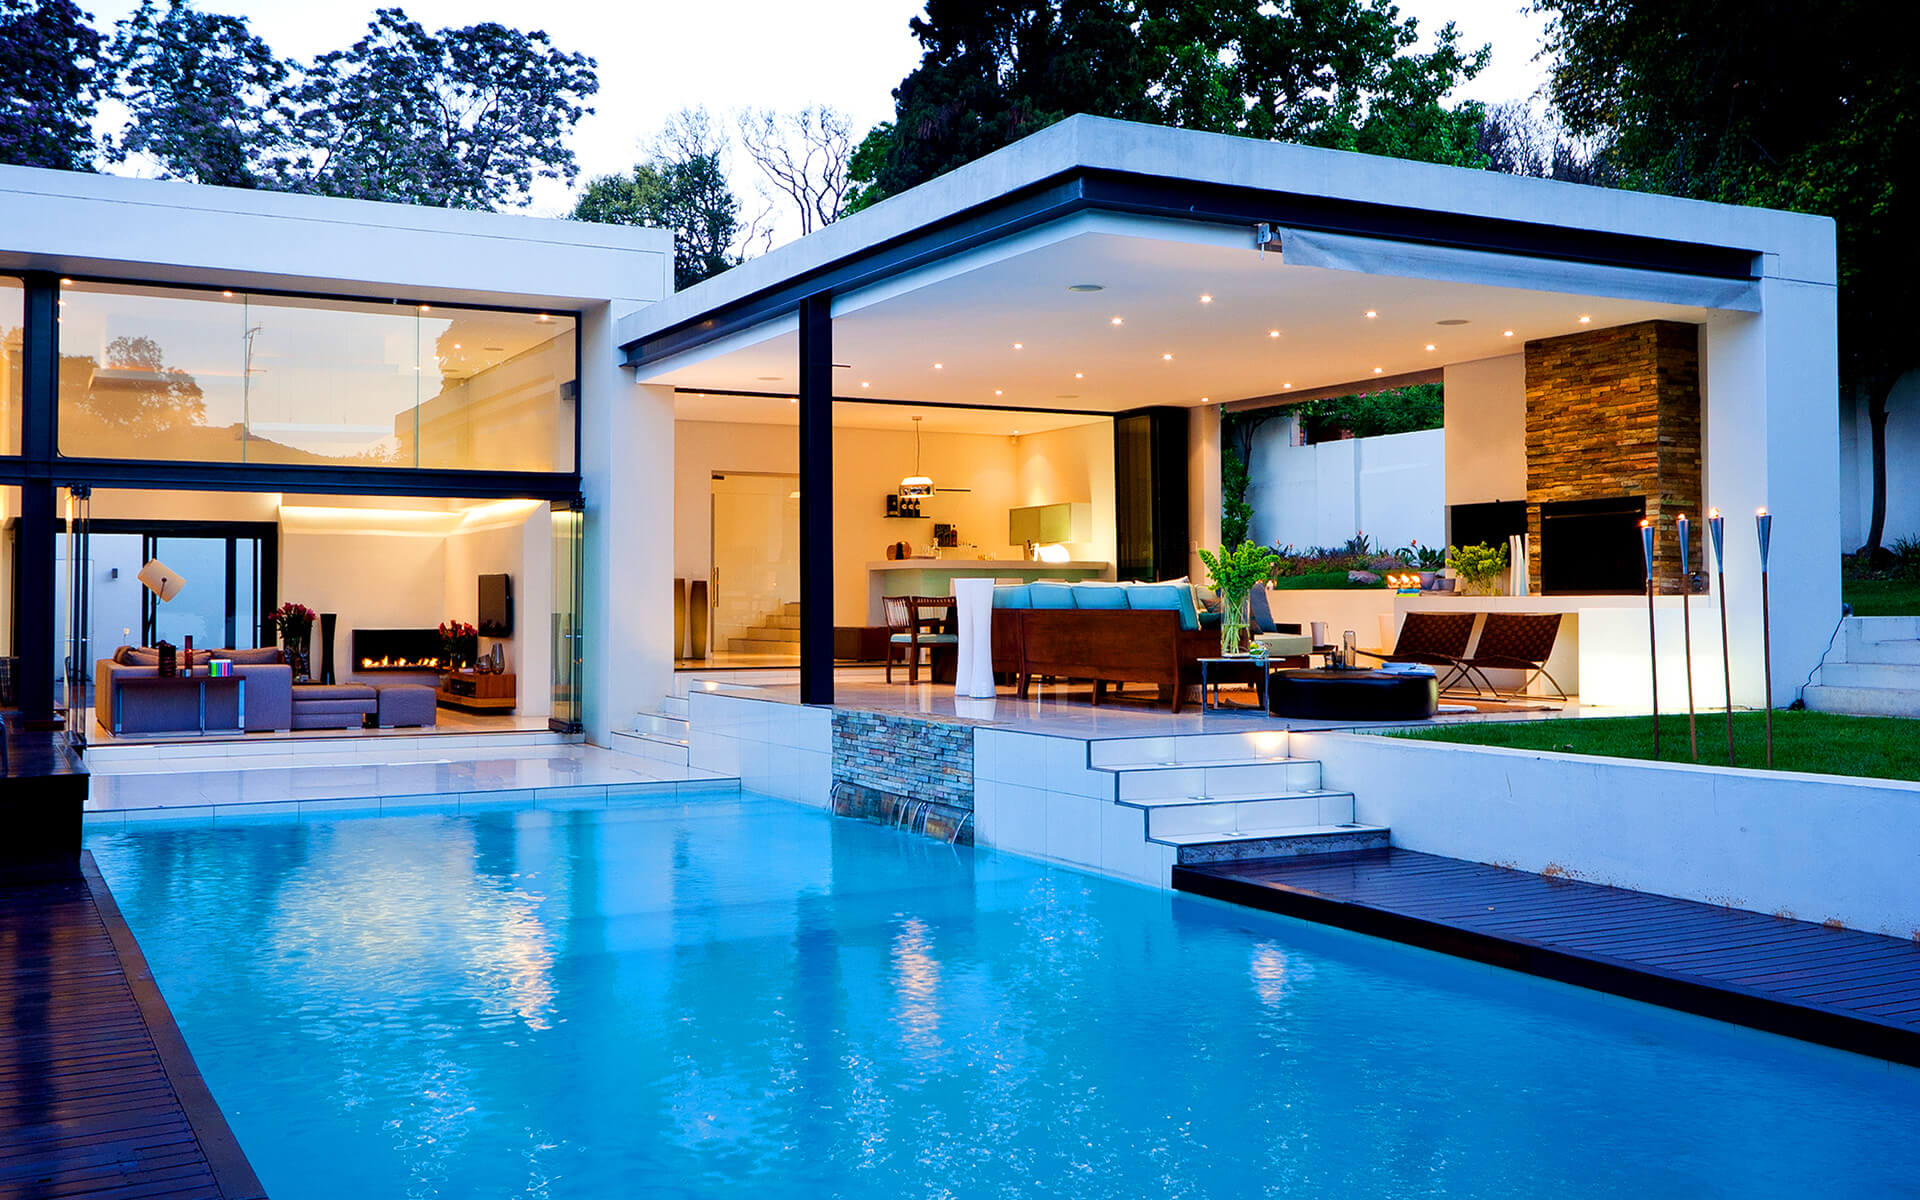 Imagine the benefits of having a pool for your home